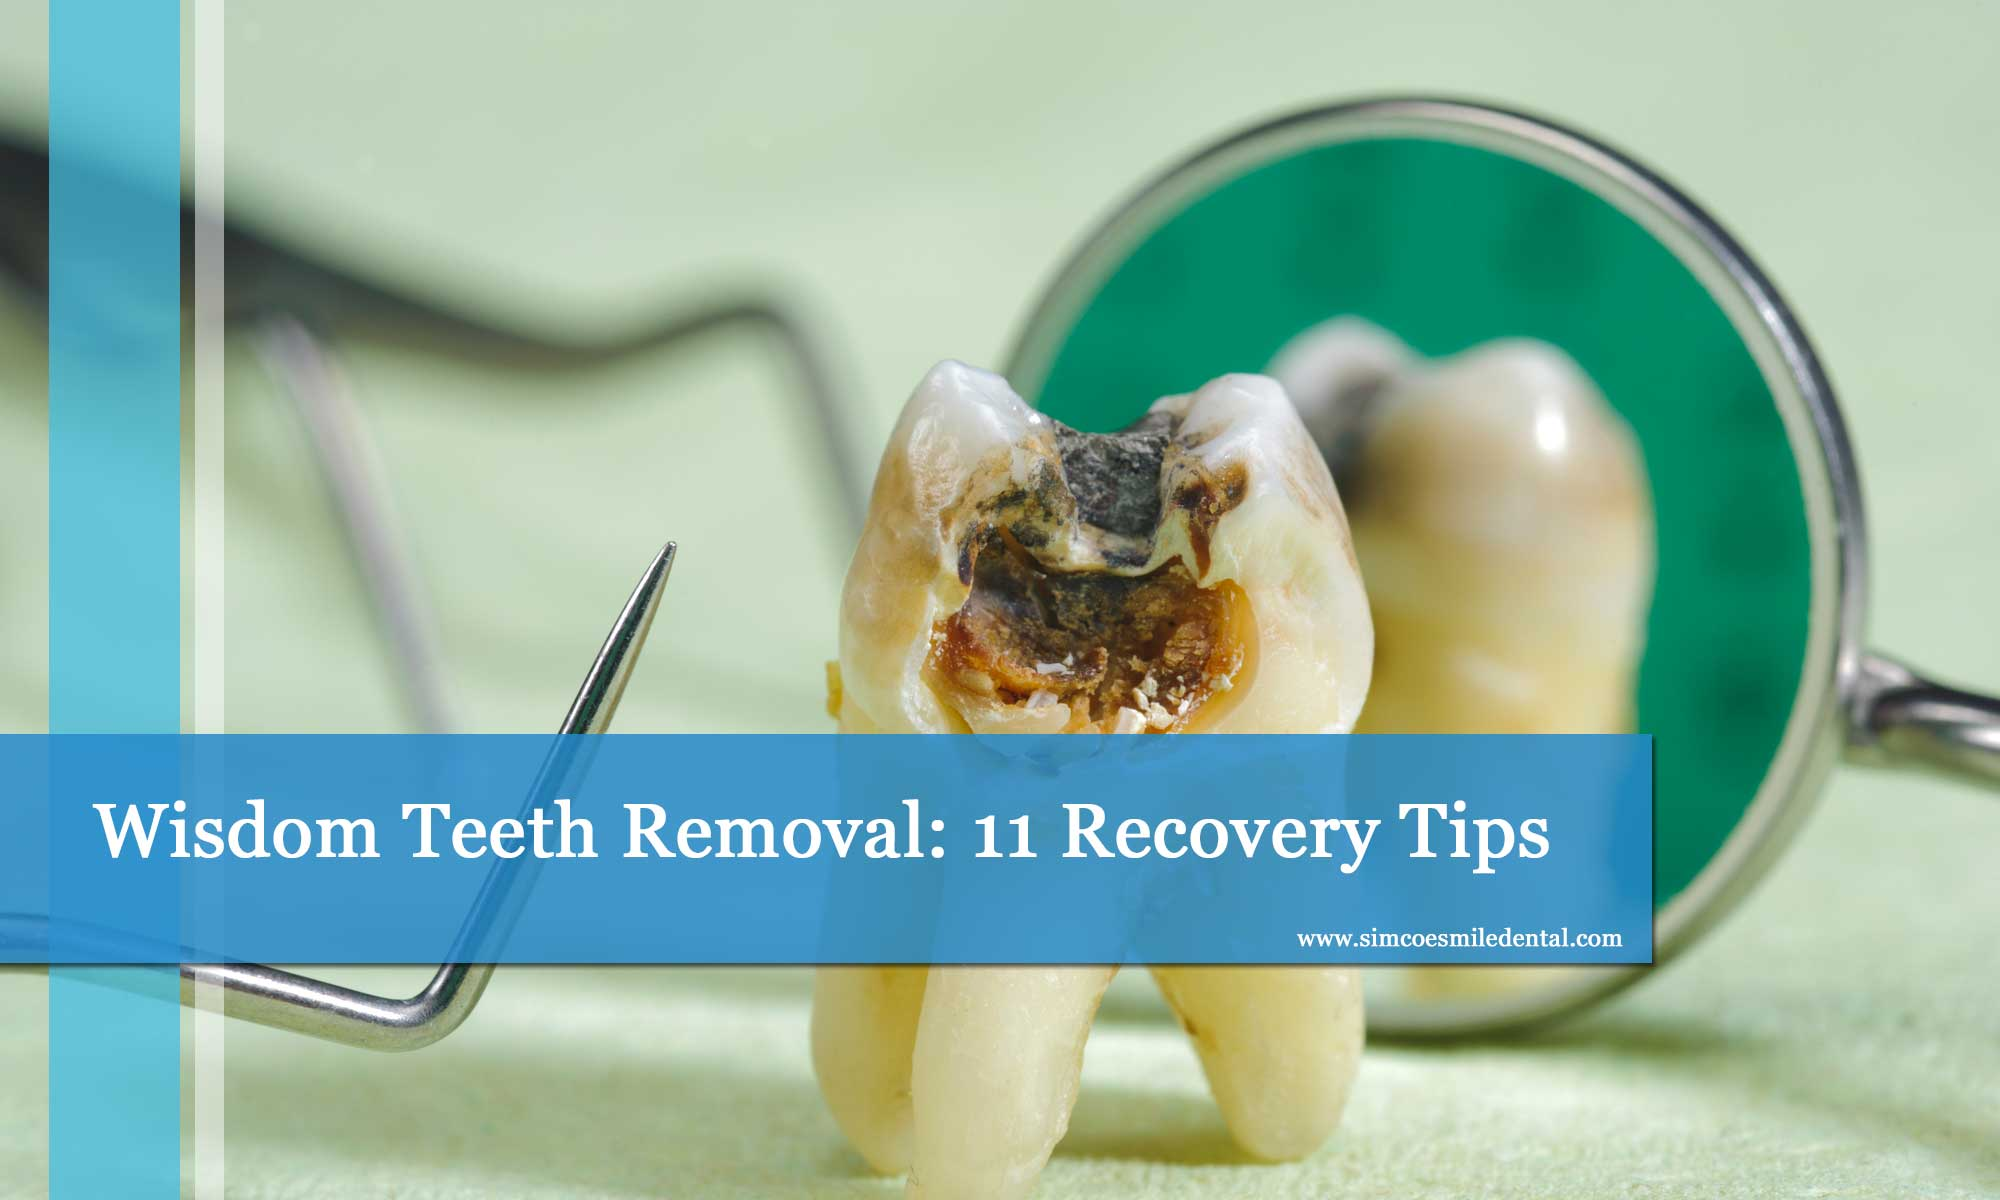 Wisdom Teeth Removal 11 Recovery Tips